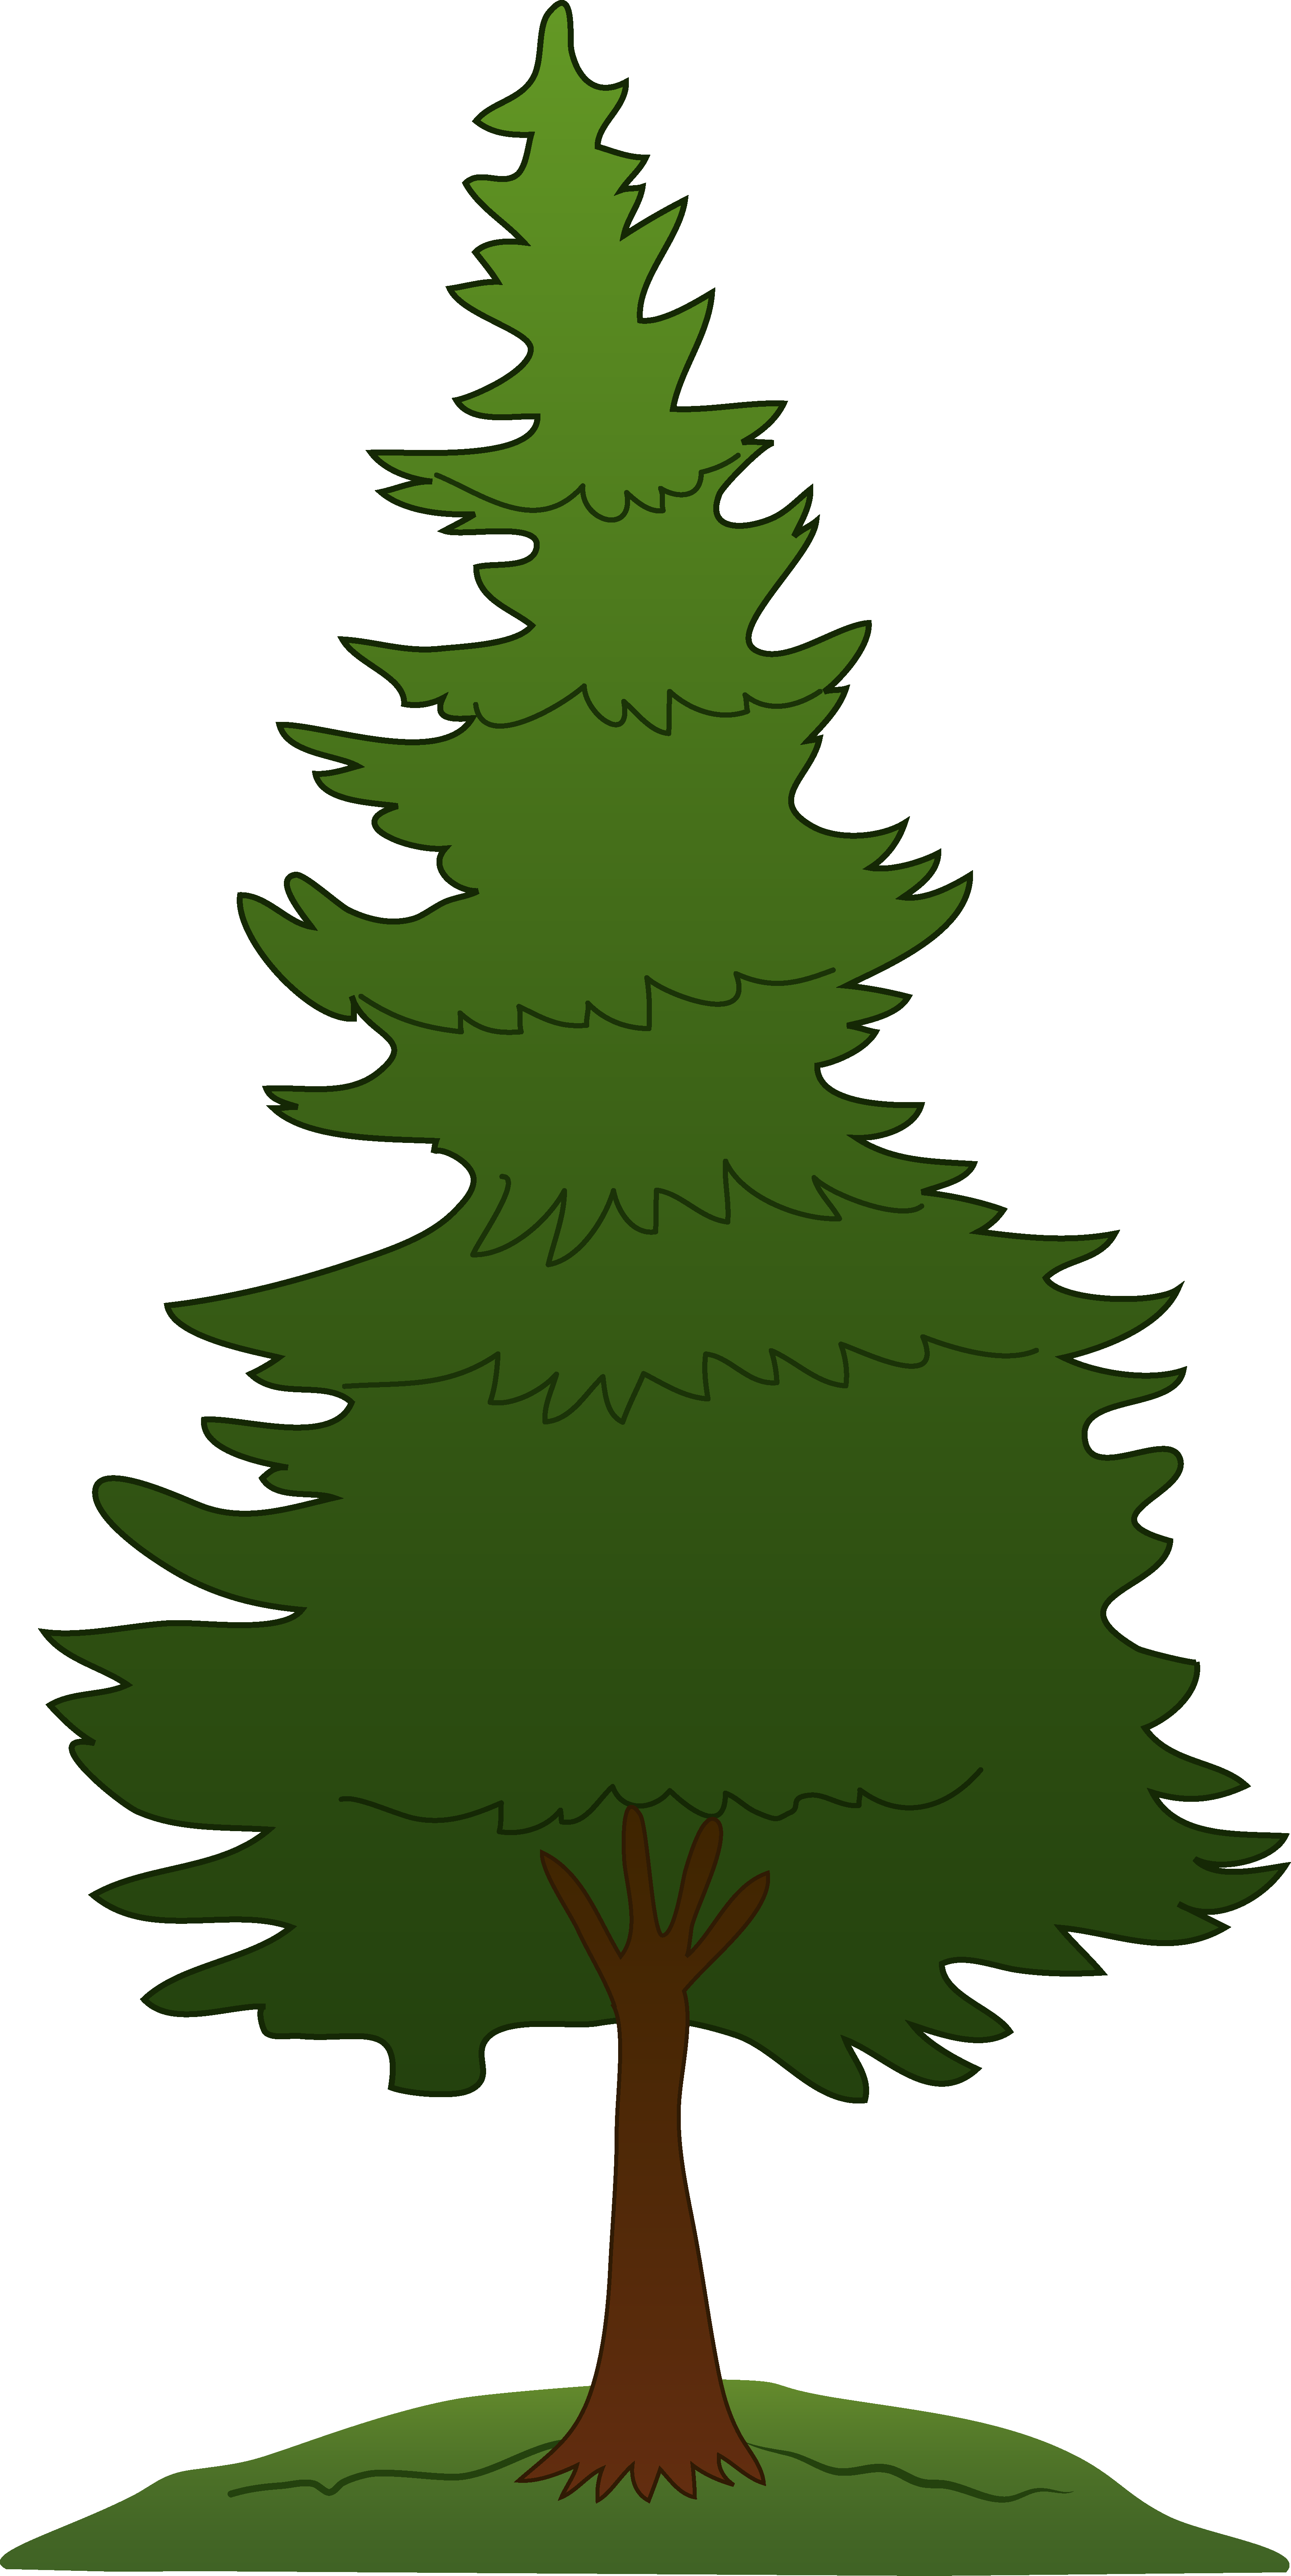 pine tree graphics clipart rh worldartsme com pine tree outline graphic pine tree graphic art